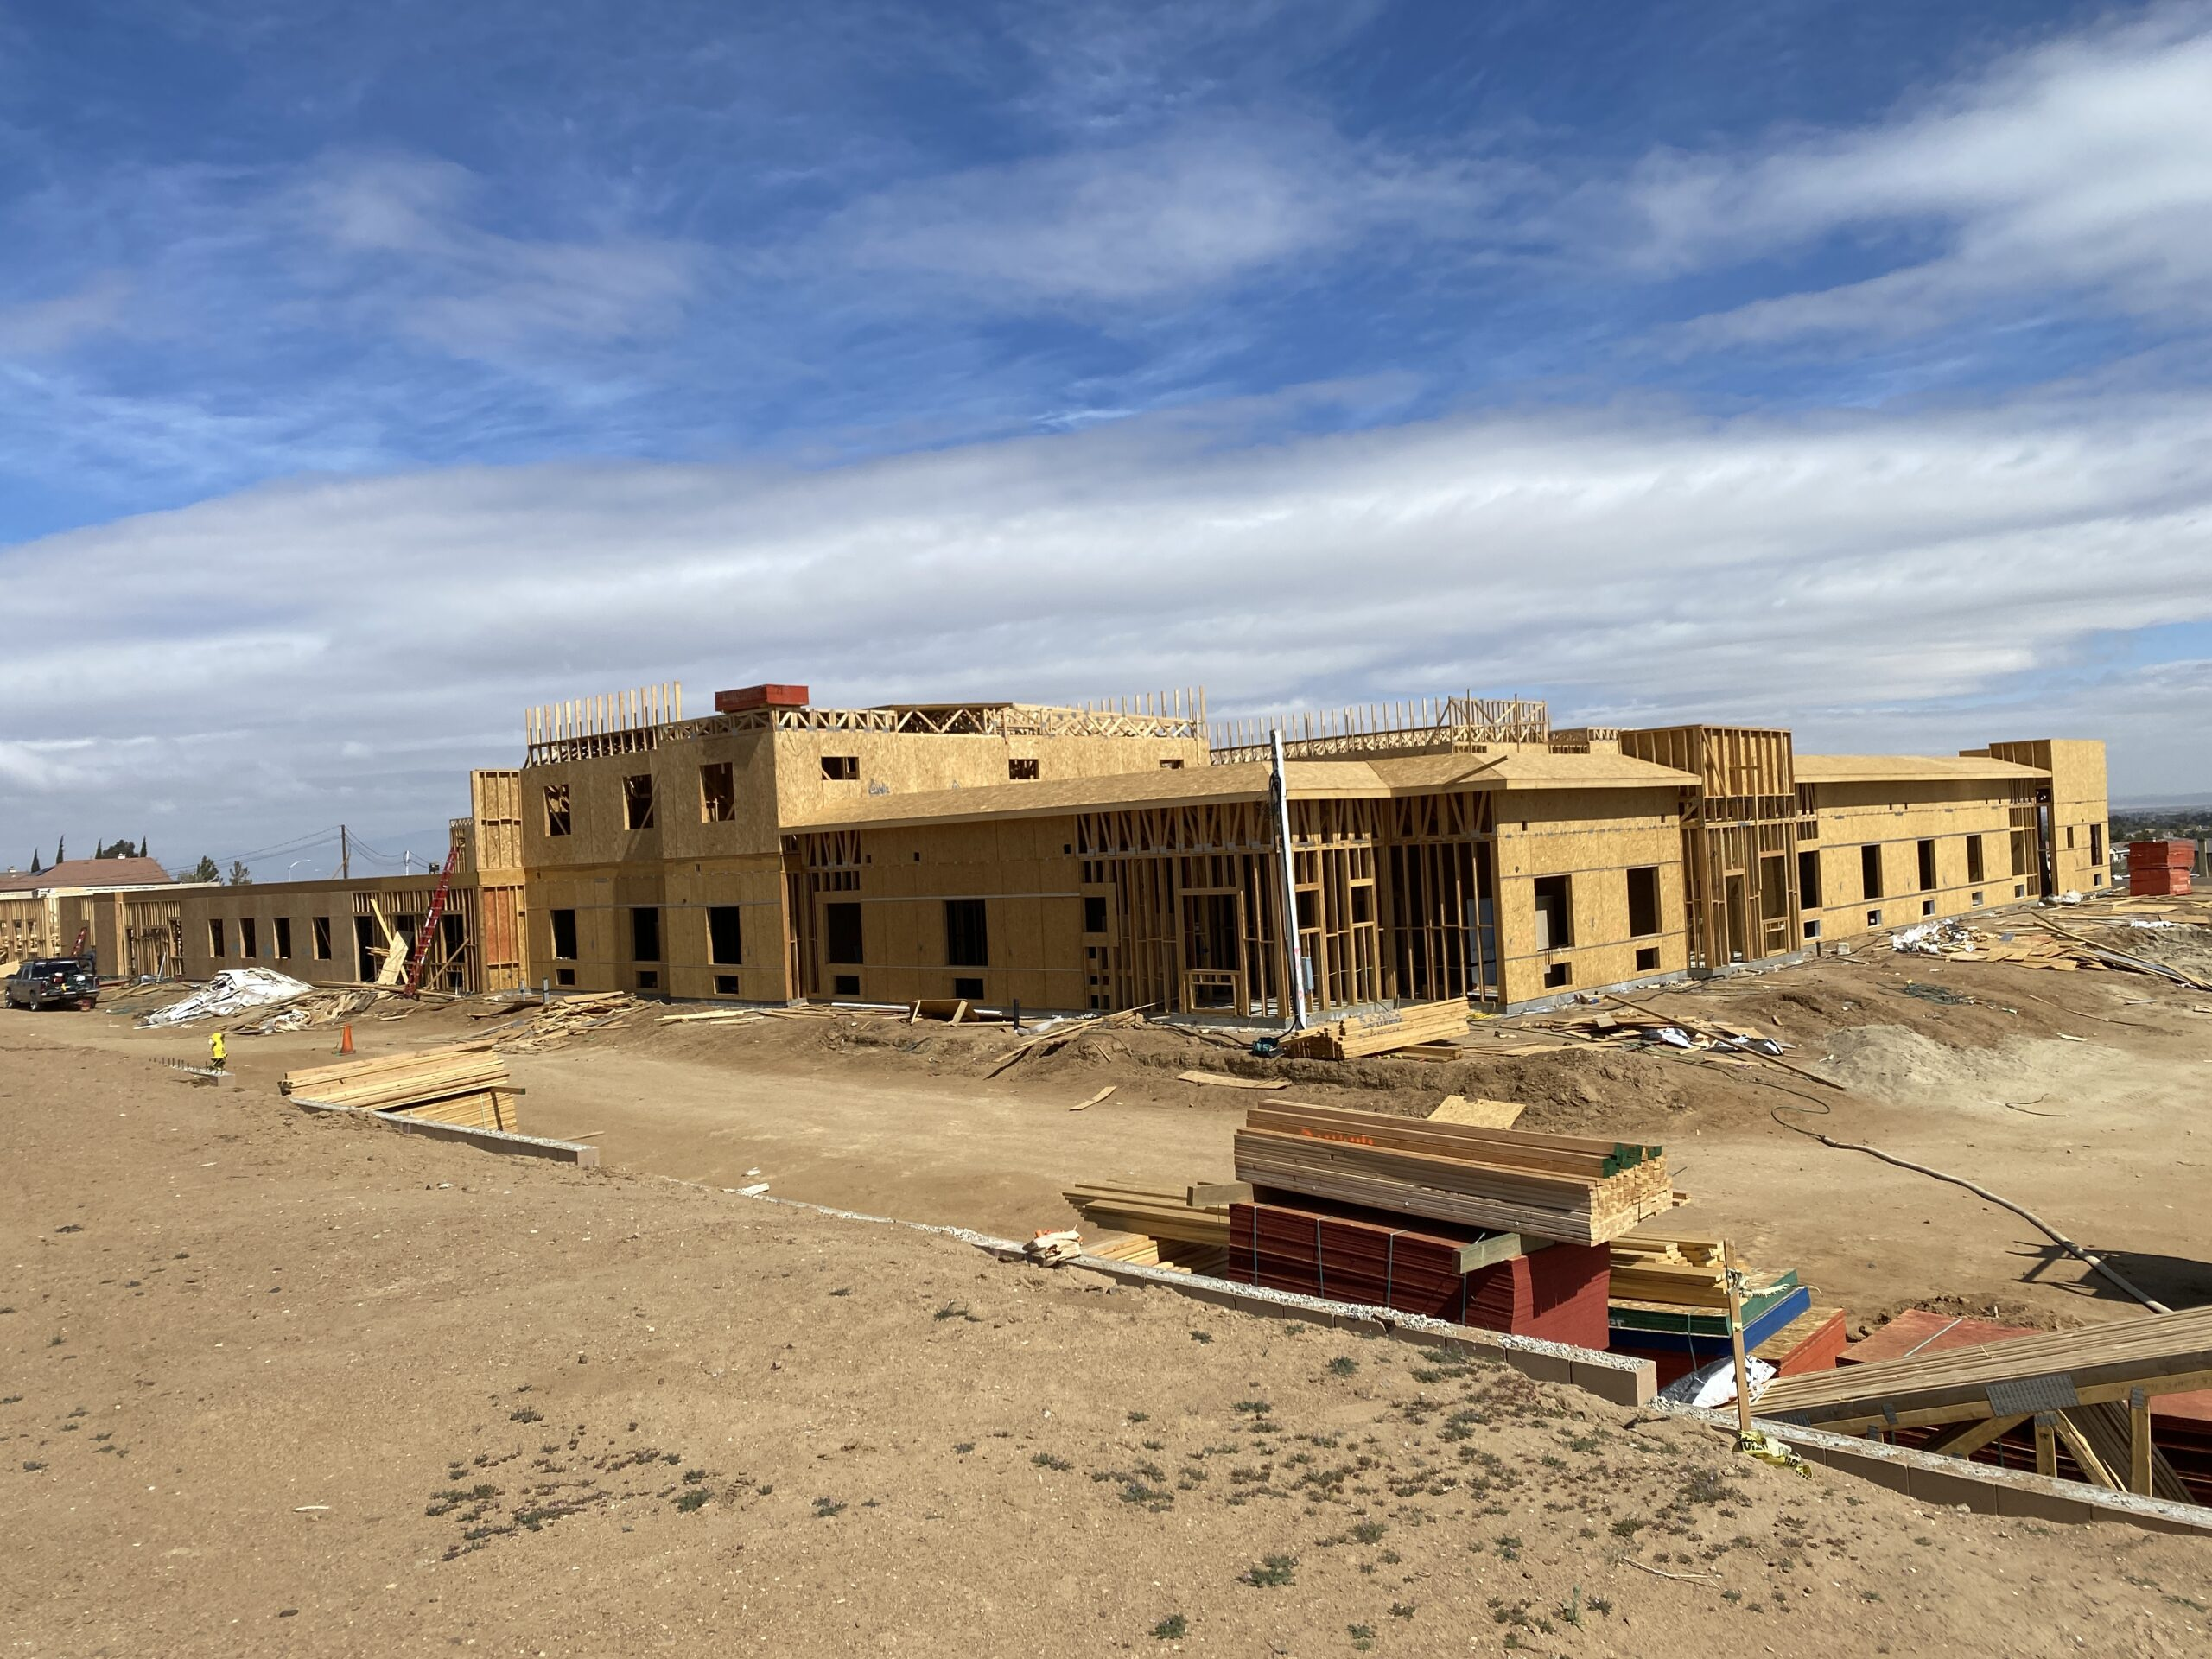 Pacific West Development Continues Framing and Prelim Drywall at Palmdale Assisted Living